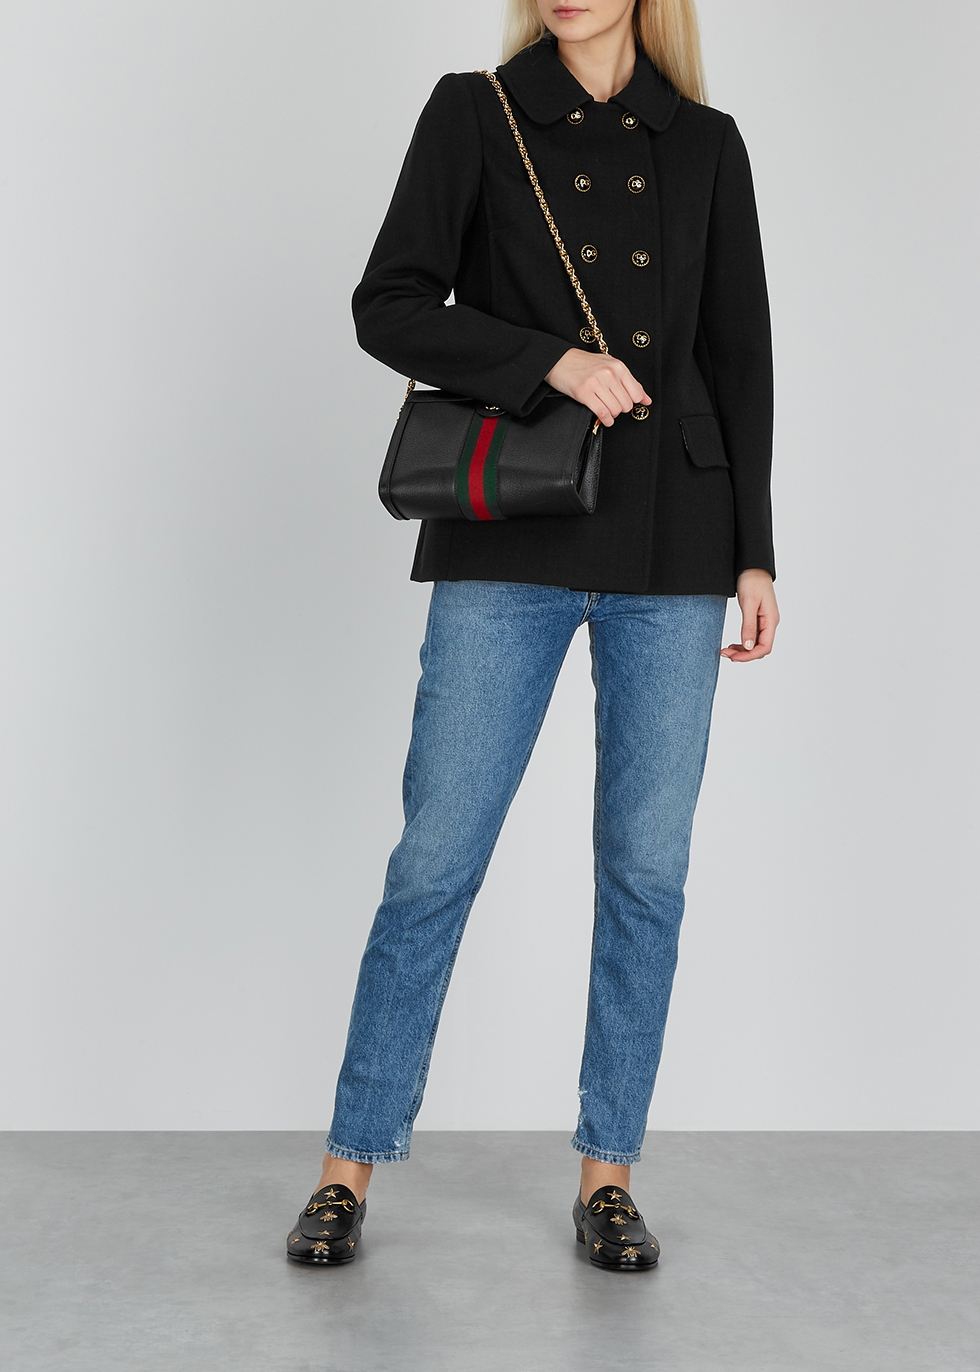 Gucci Jordaan black embroidered leather